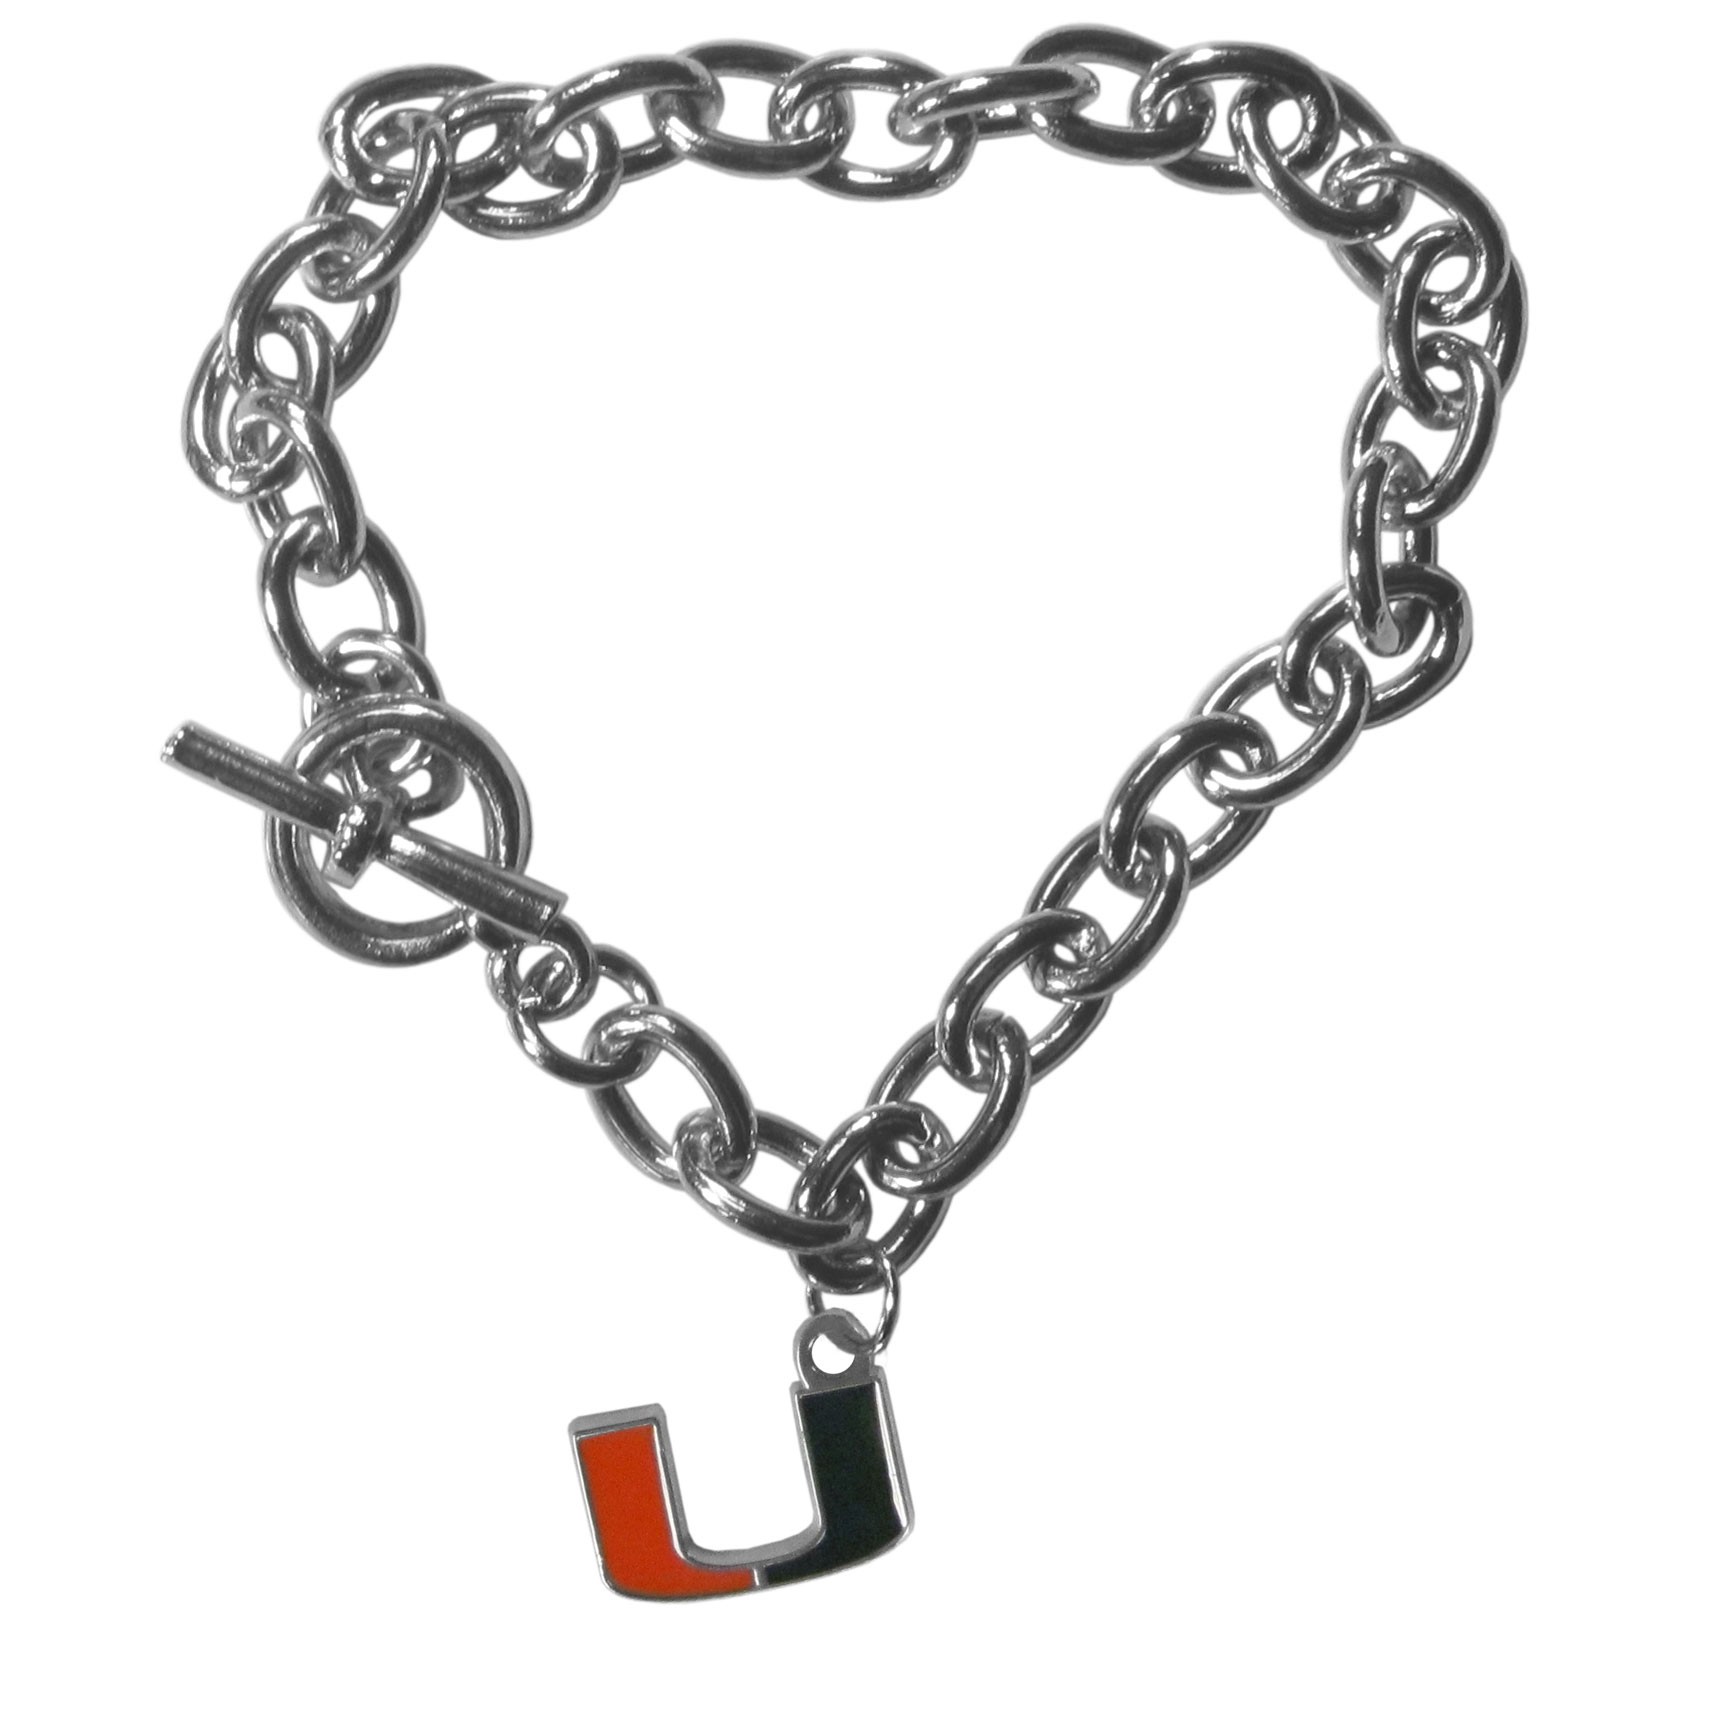 Miami Hurricanes Charm Chain Bracelet - Our classic single charm bracelet is a great way to show off your team pride! The 7.5 inch large link chain features a high polish Miami Hurricanes charm and features a toggle clasp which makes it super easy to take on and off.